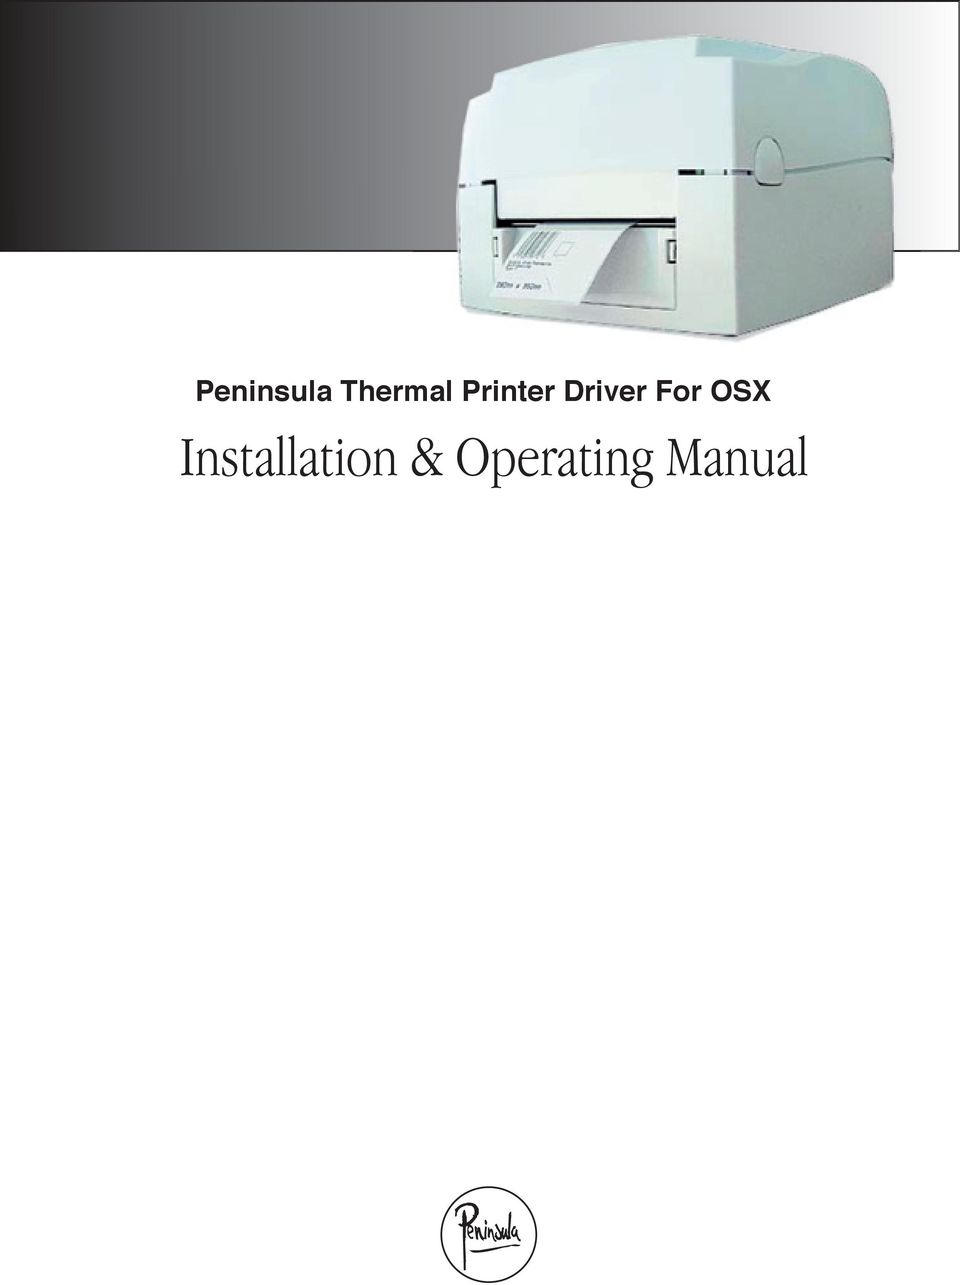 Peninsula Thermal Printer Driver For OSX  Installation